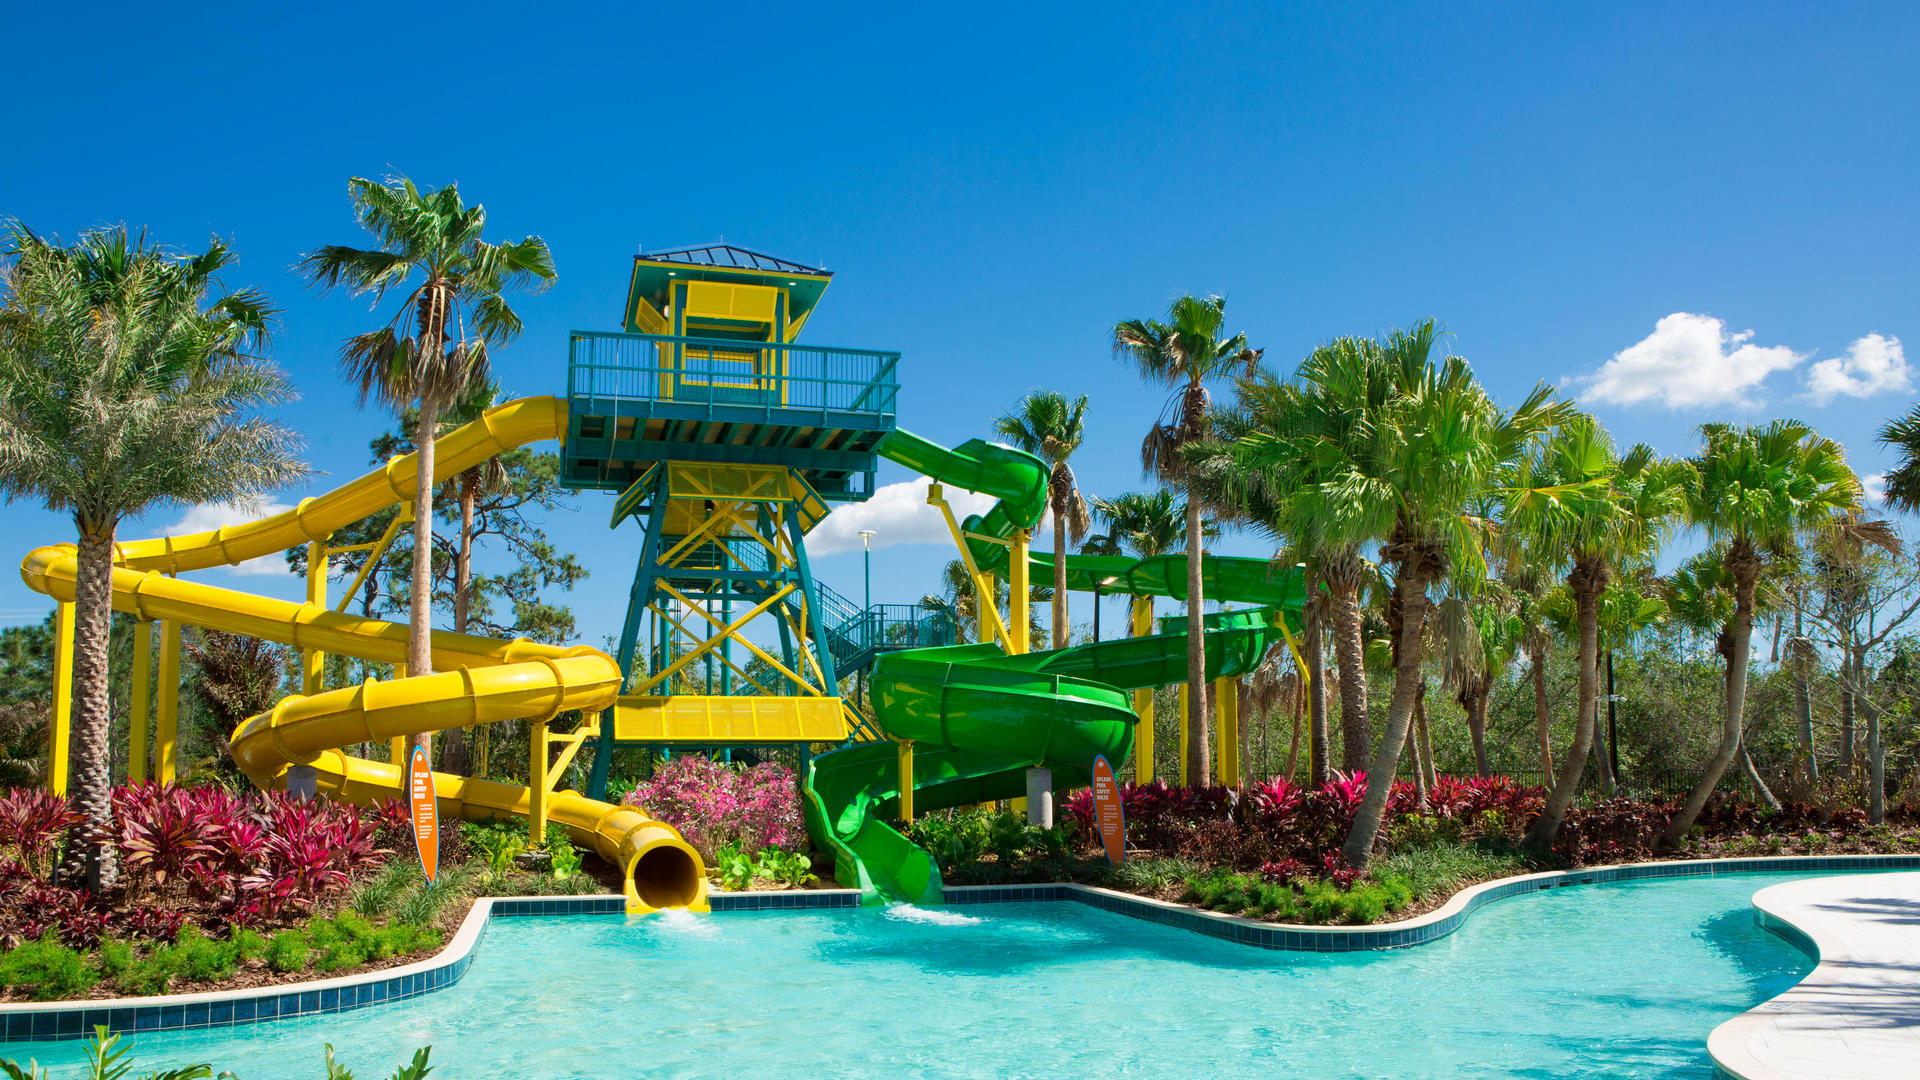 Grove waterslides